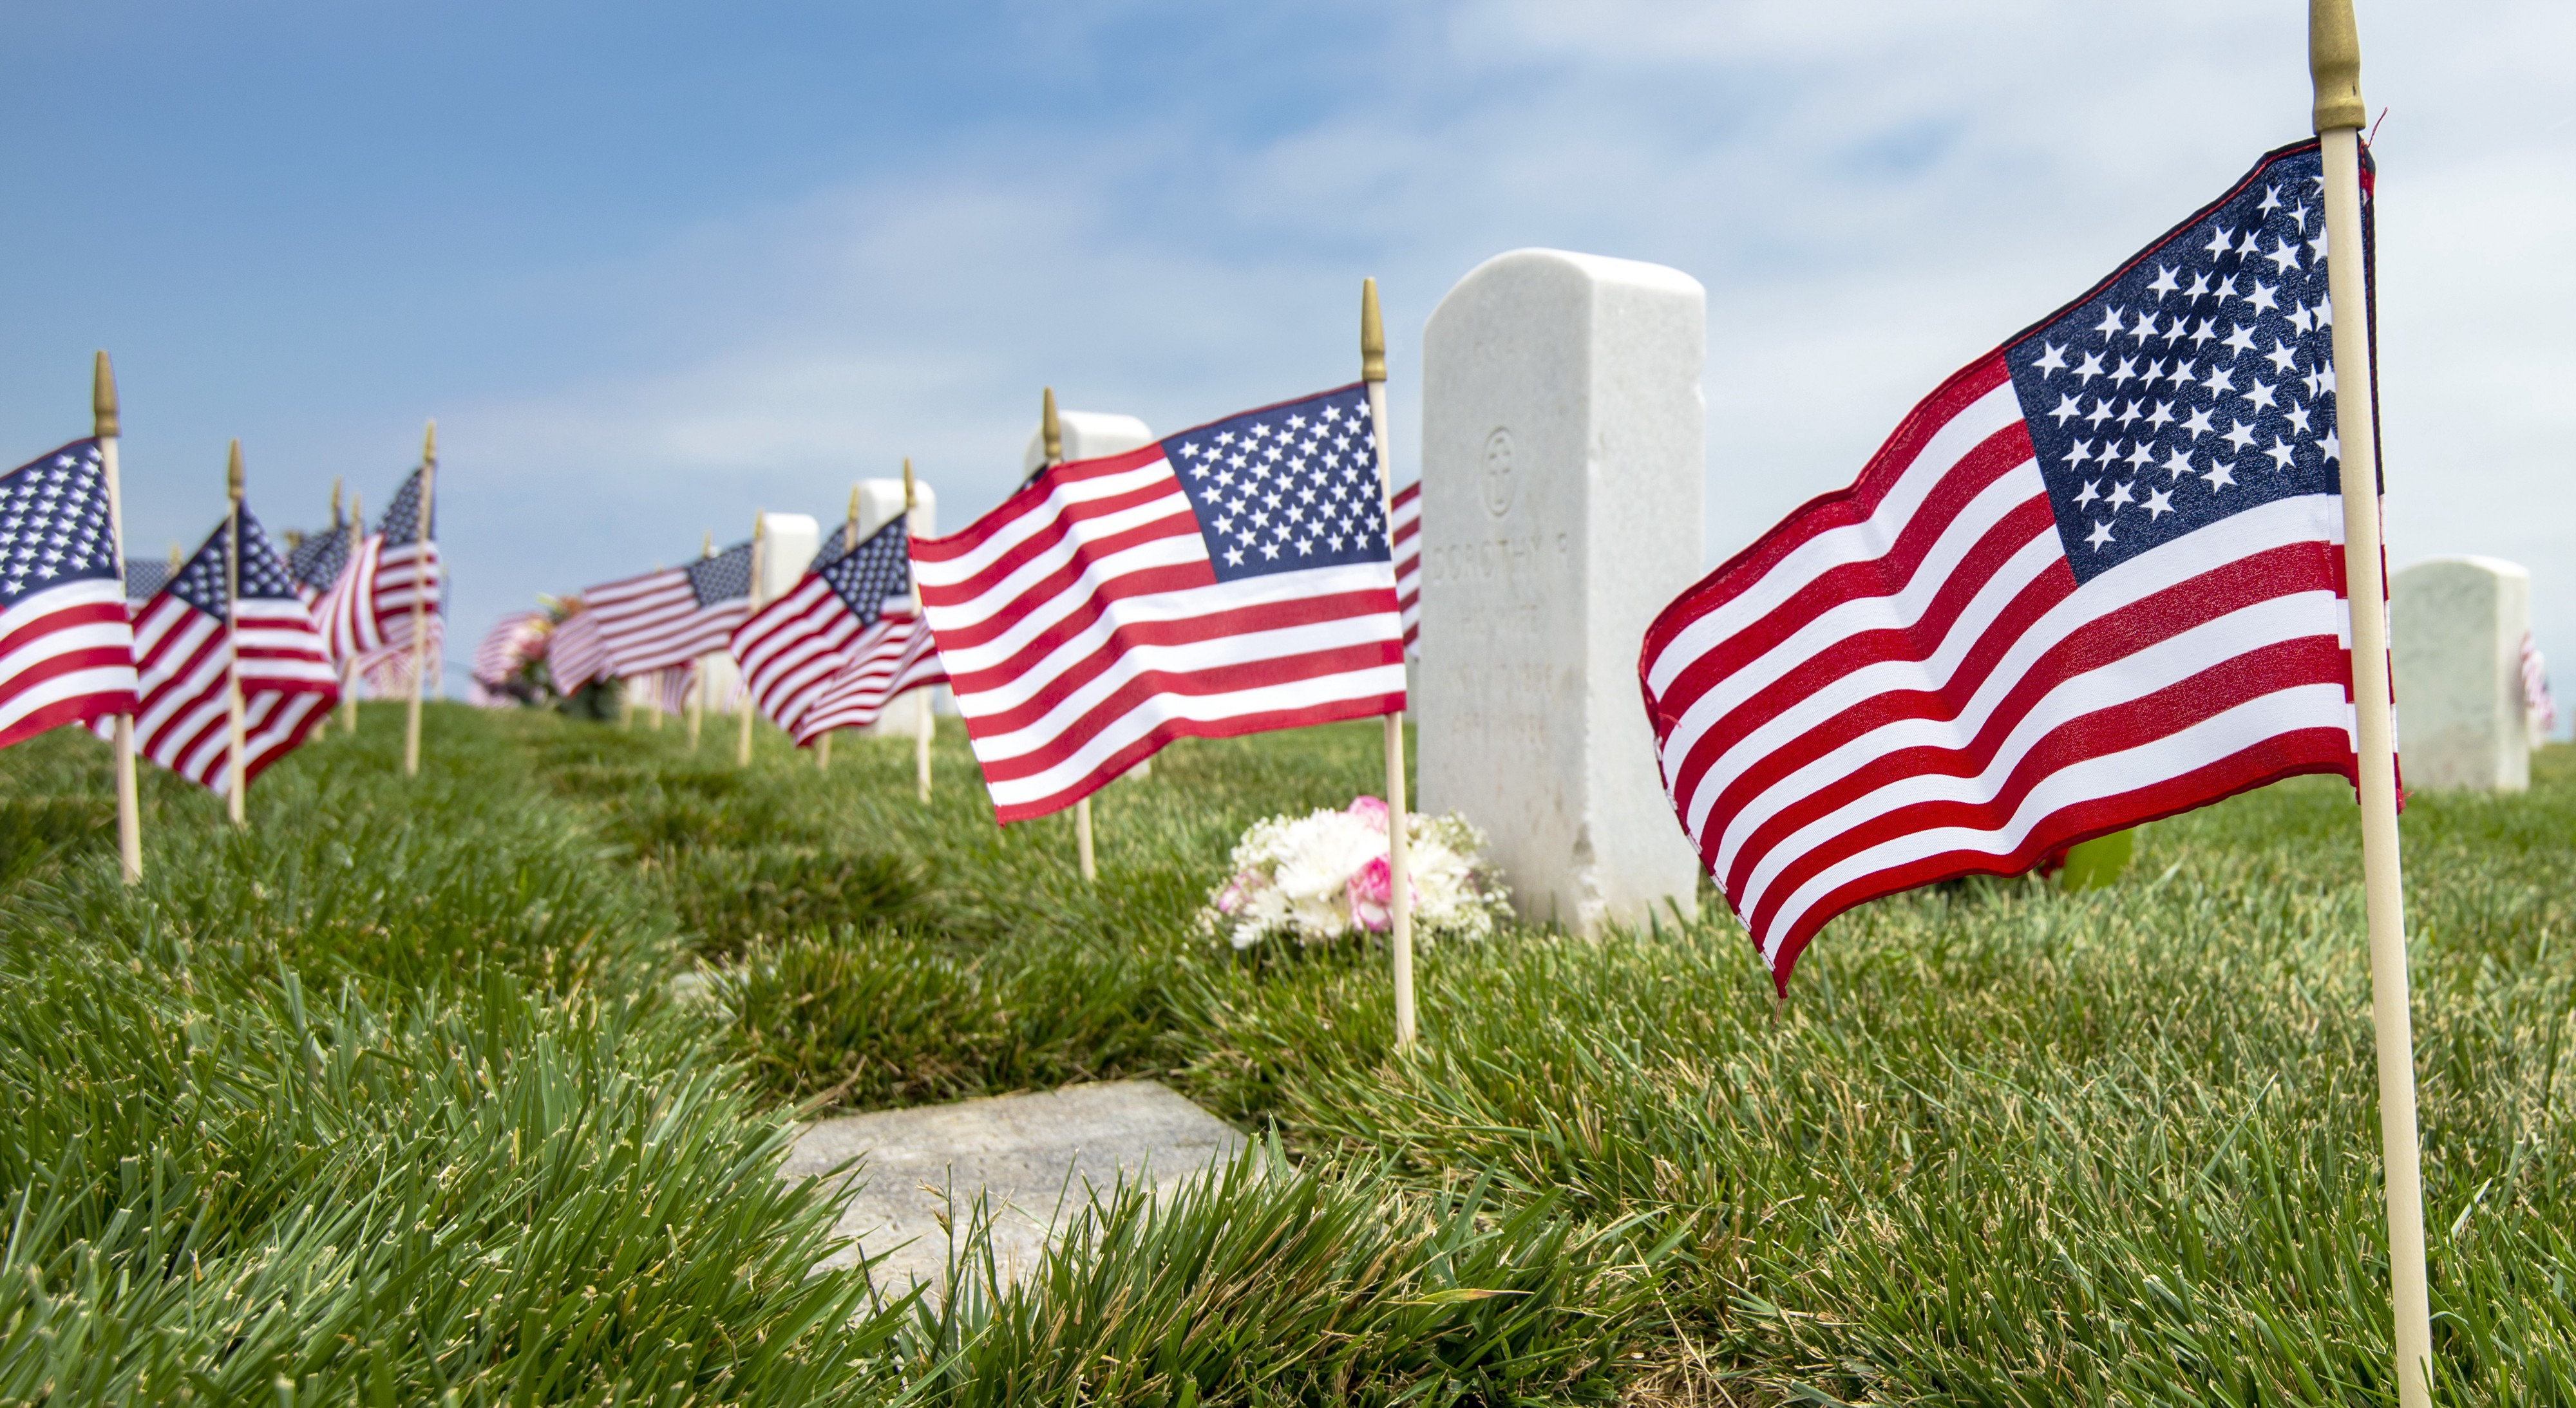 A color photo shows a row of white marble military-style headstones, each decorated with a miniature U.S. flag sticking out of the ground in front of it.